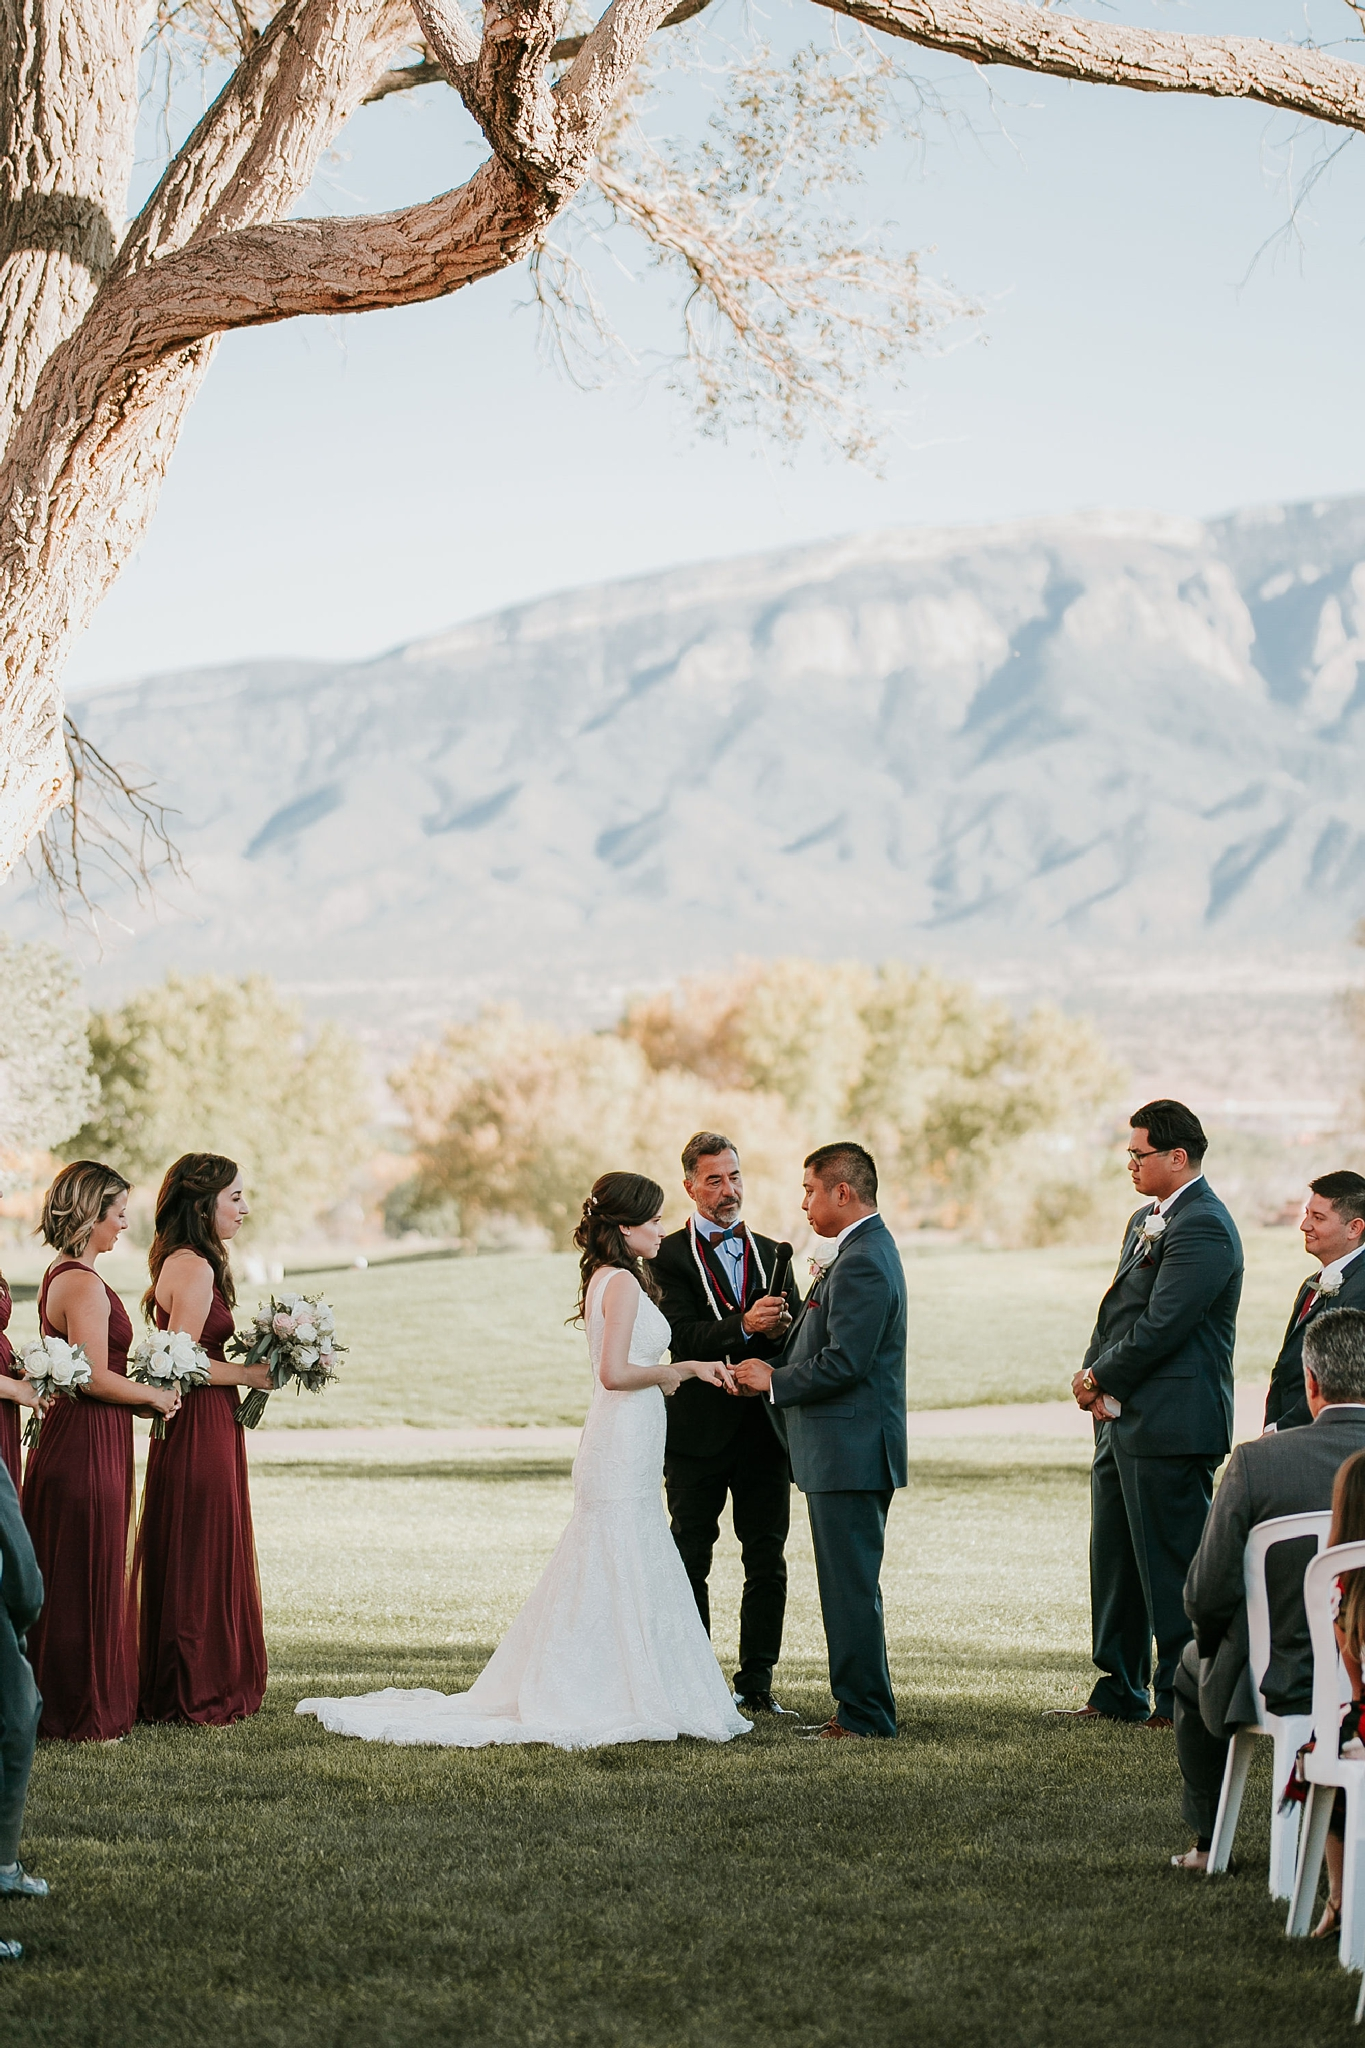 Alicia+lucia+photography+-+albuquerque+wedding+photographer+-+santa+fe+wedding+photography+-+new+mexico+wedding+photographer+-+new+mexico+wedding+-+wedding+vows+-+writing+your+own+vows+-+wedding+inspo_0011.jpg